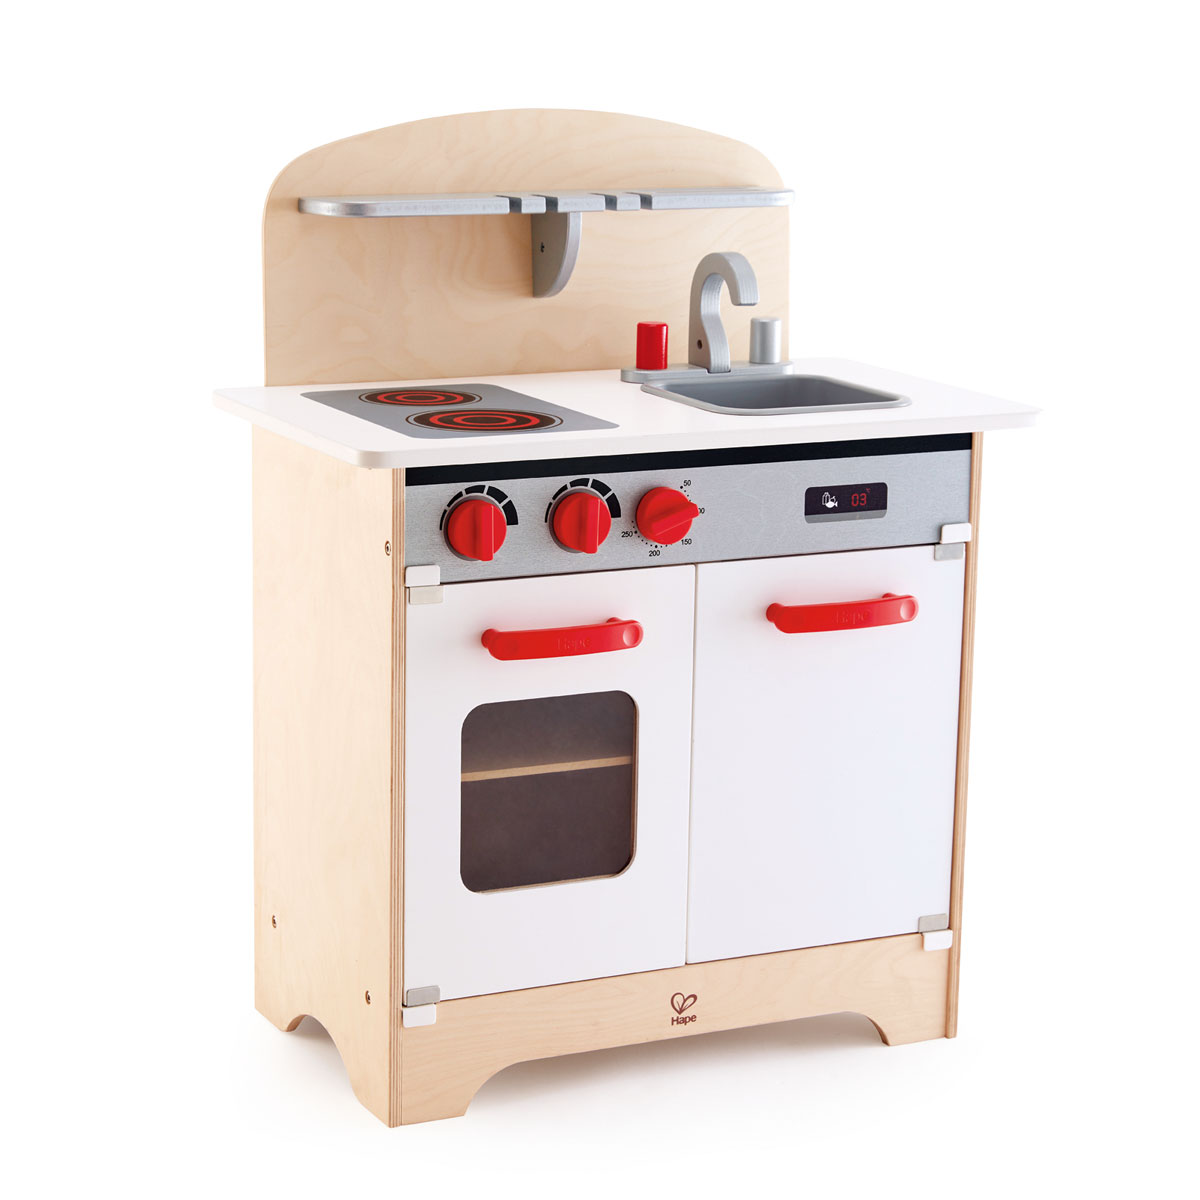 Hape Wooden Gourmet Play Kitchen